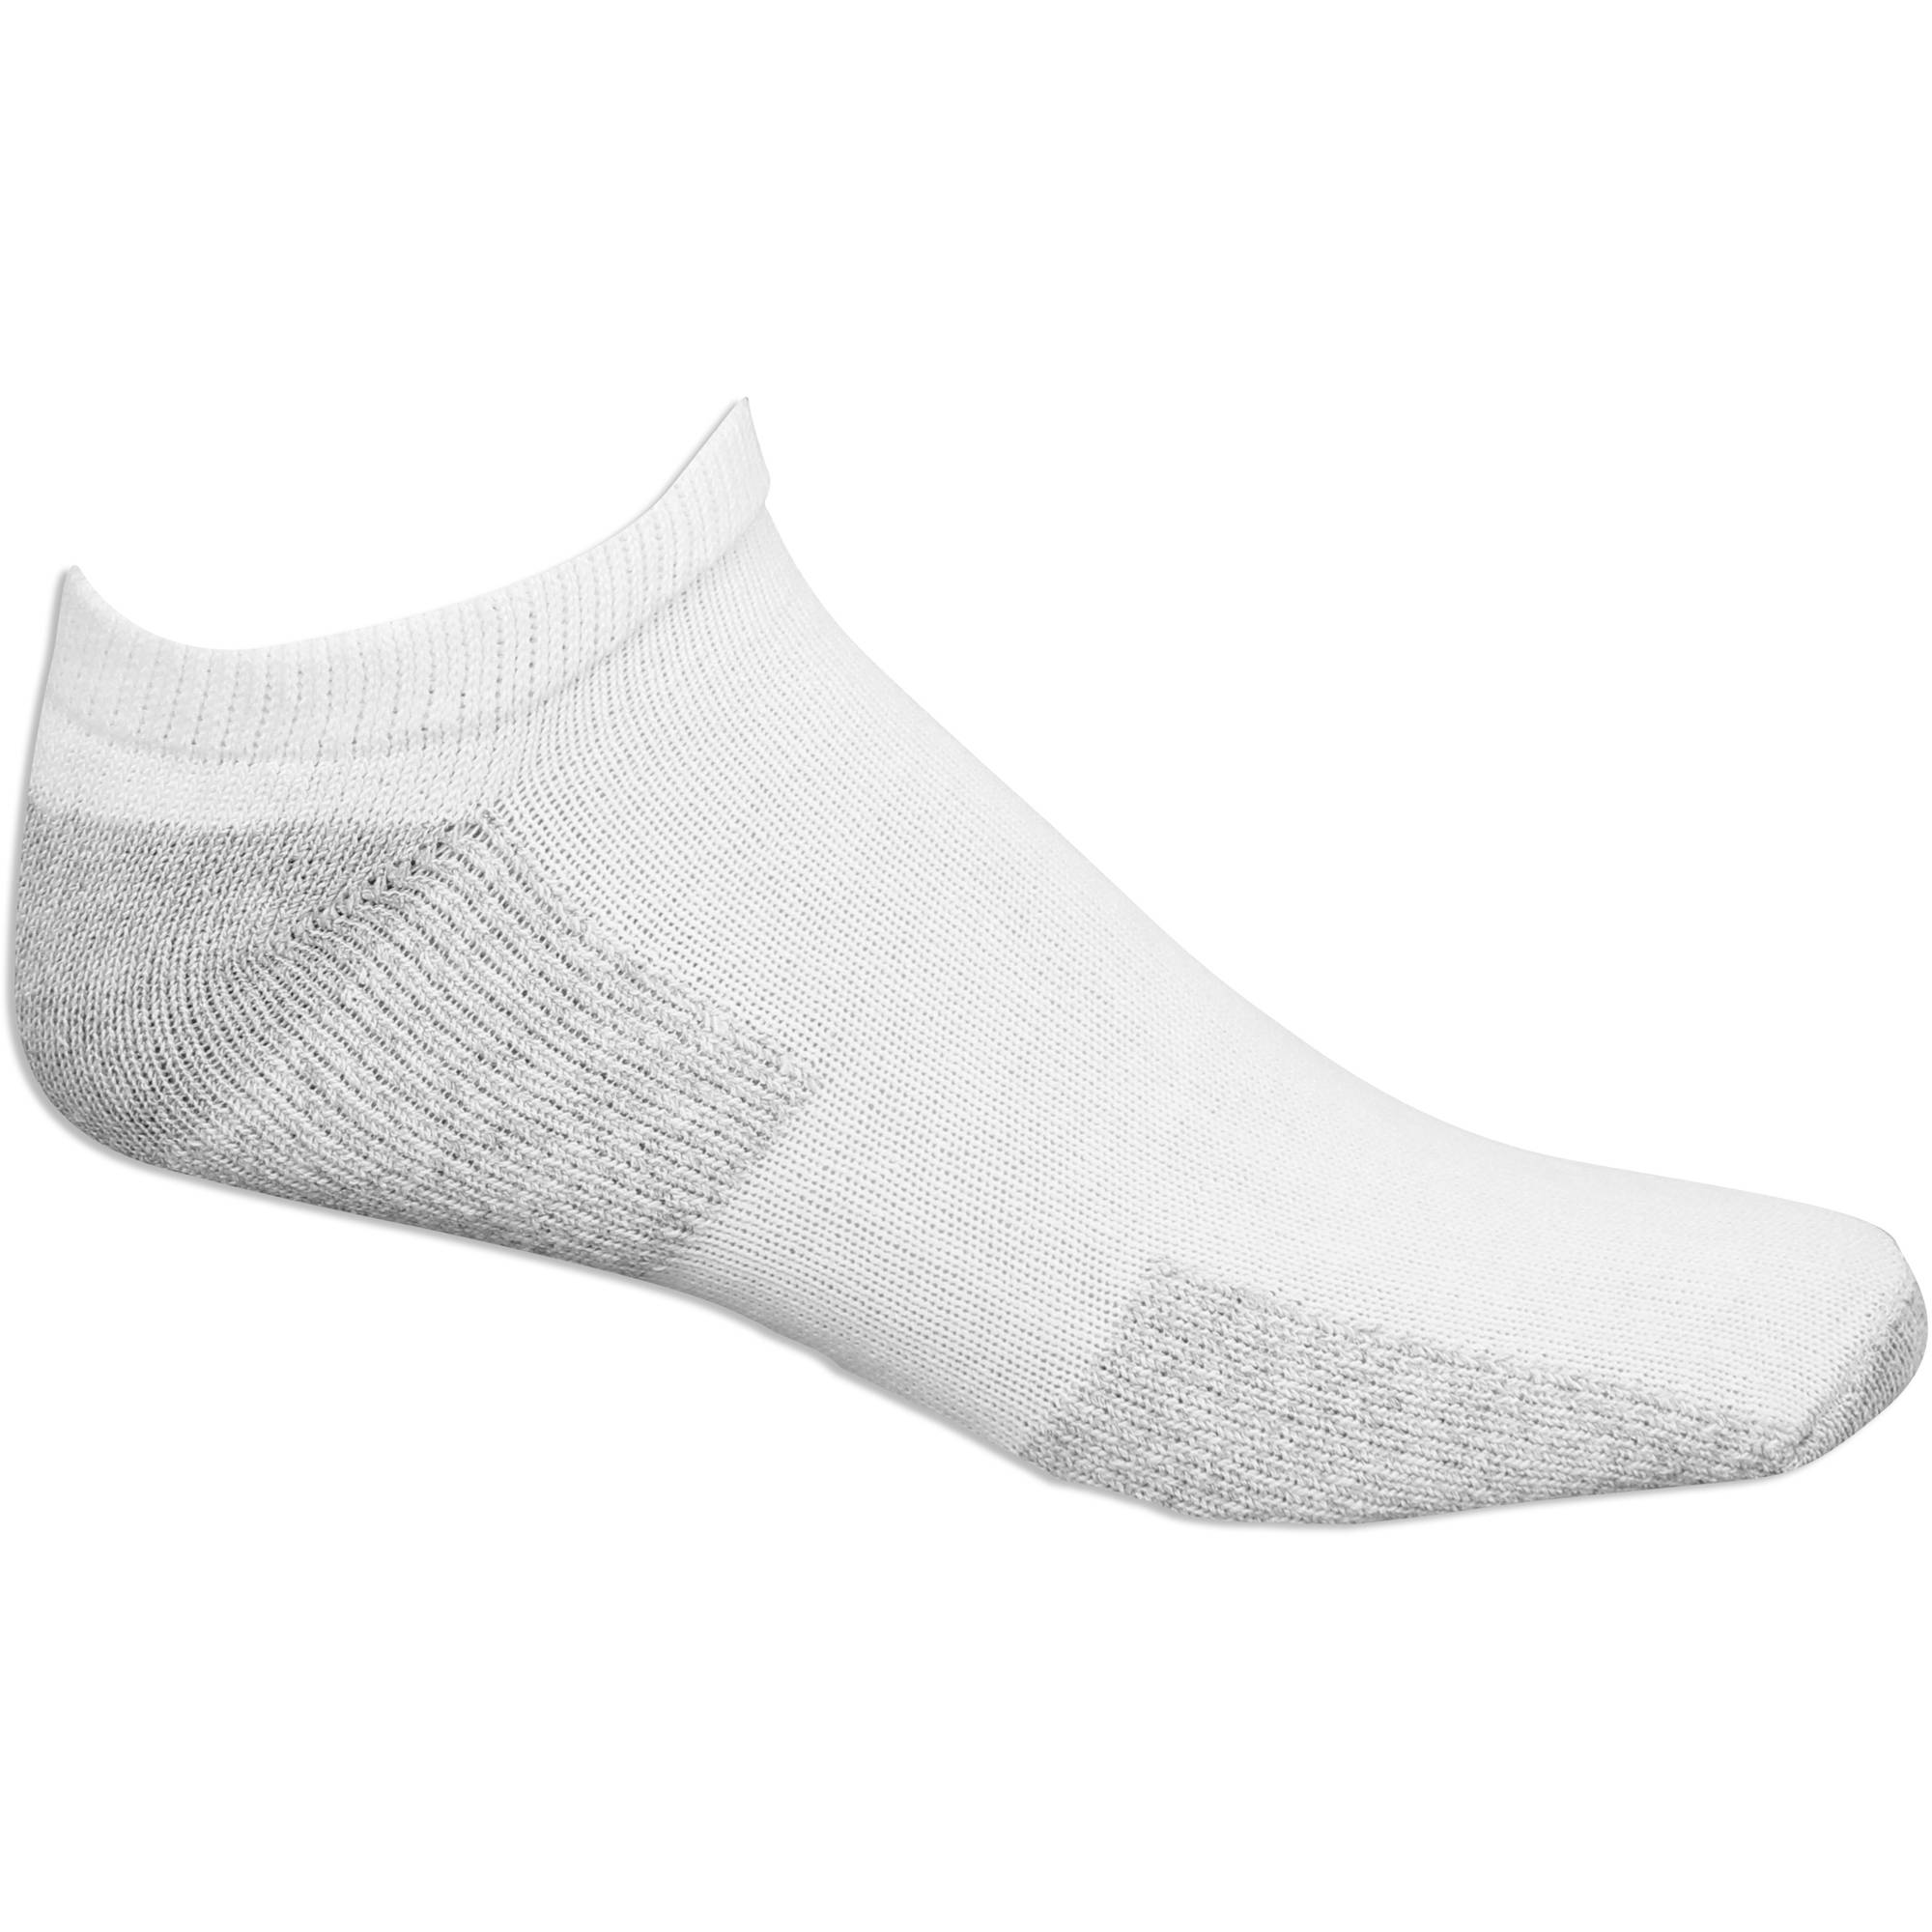 Fruit of the Loom Mens Big & Tall No Show Socks 10 Pack